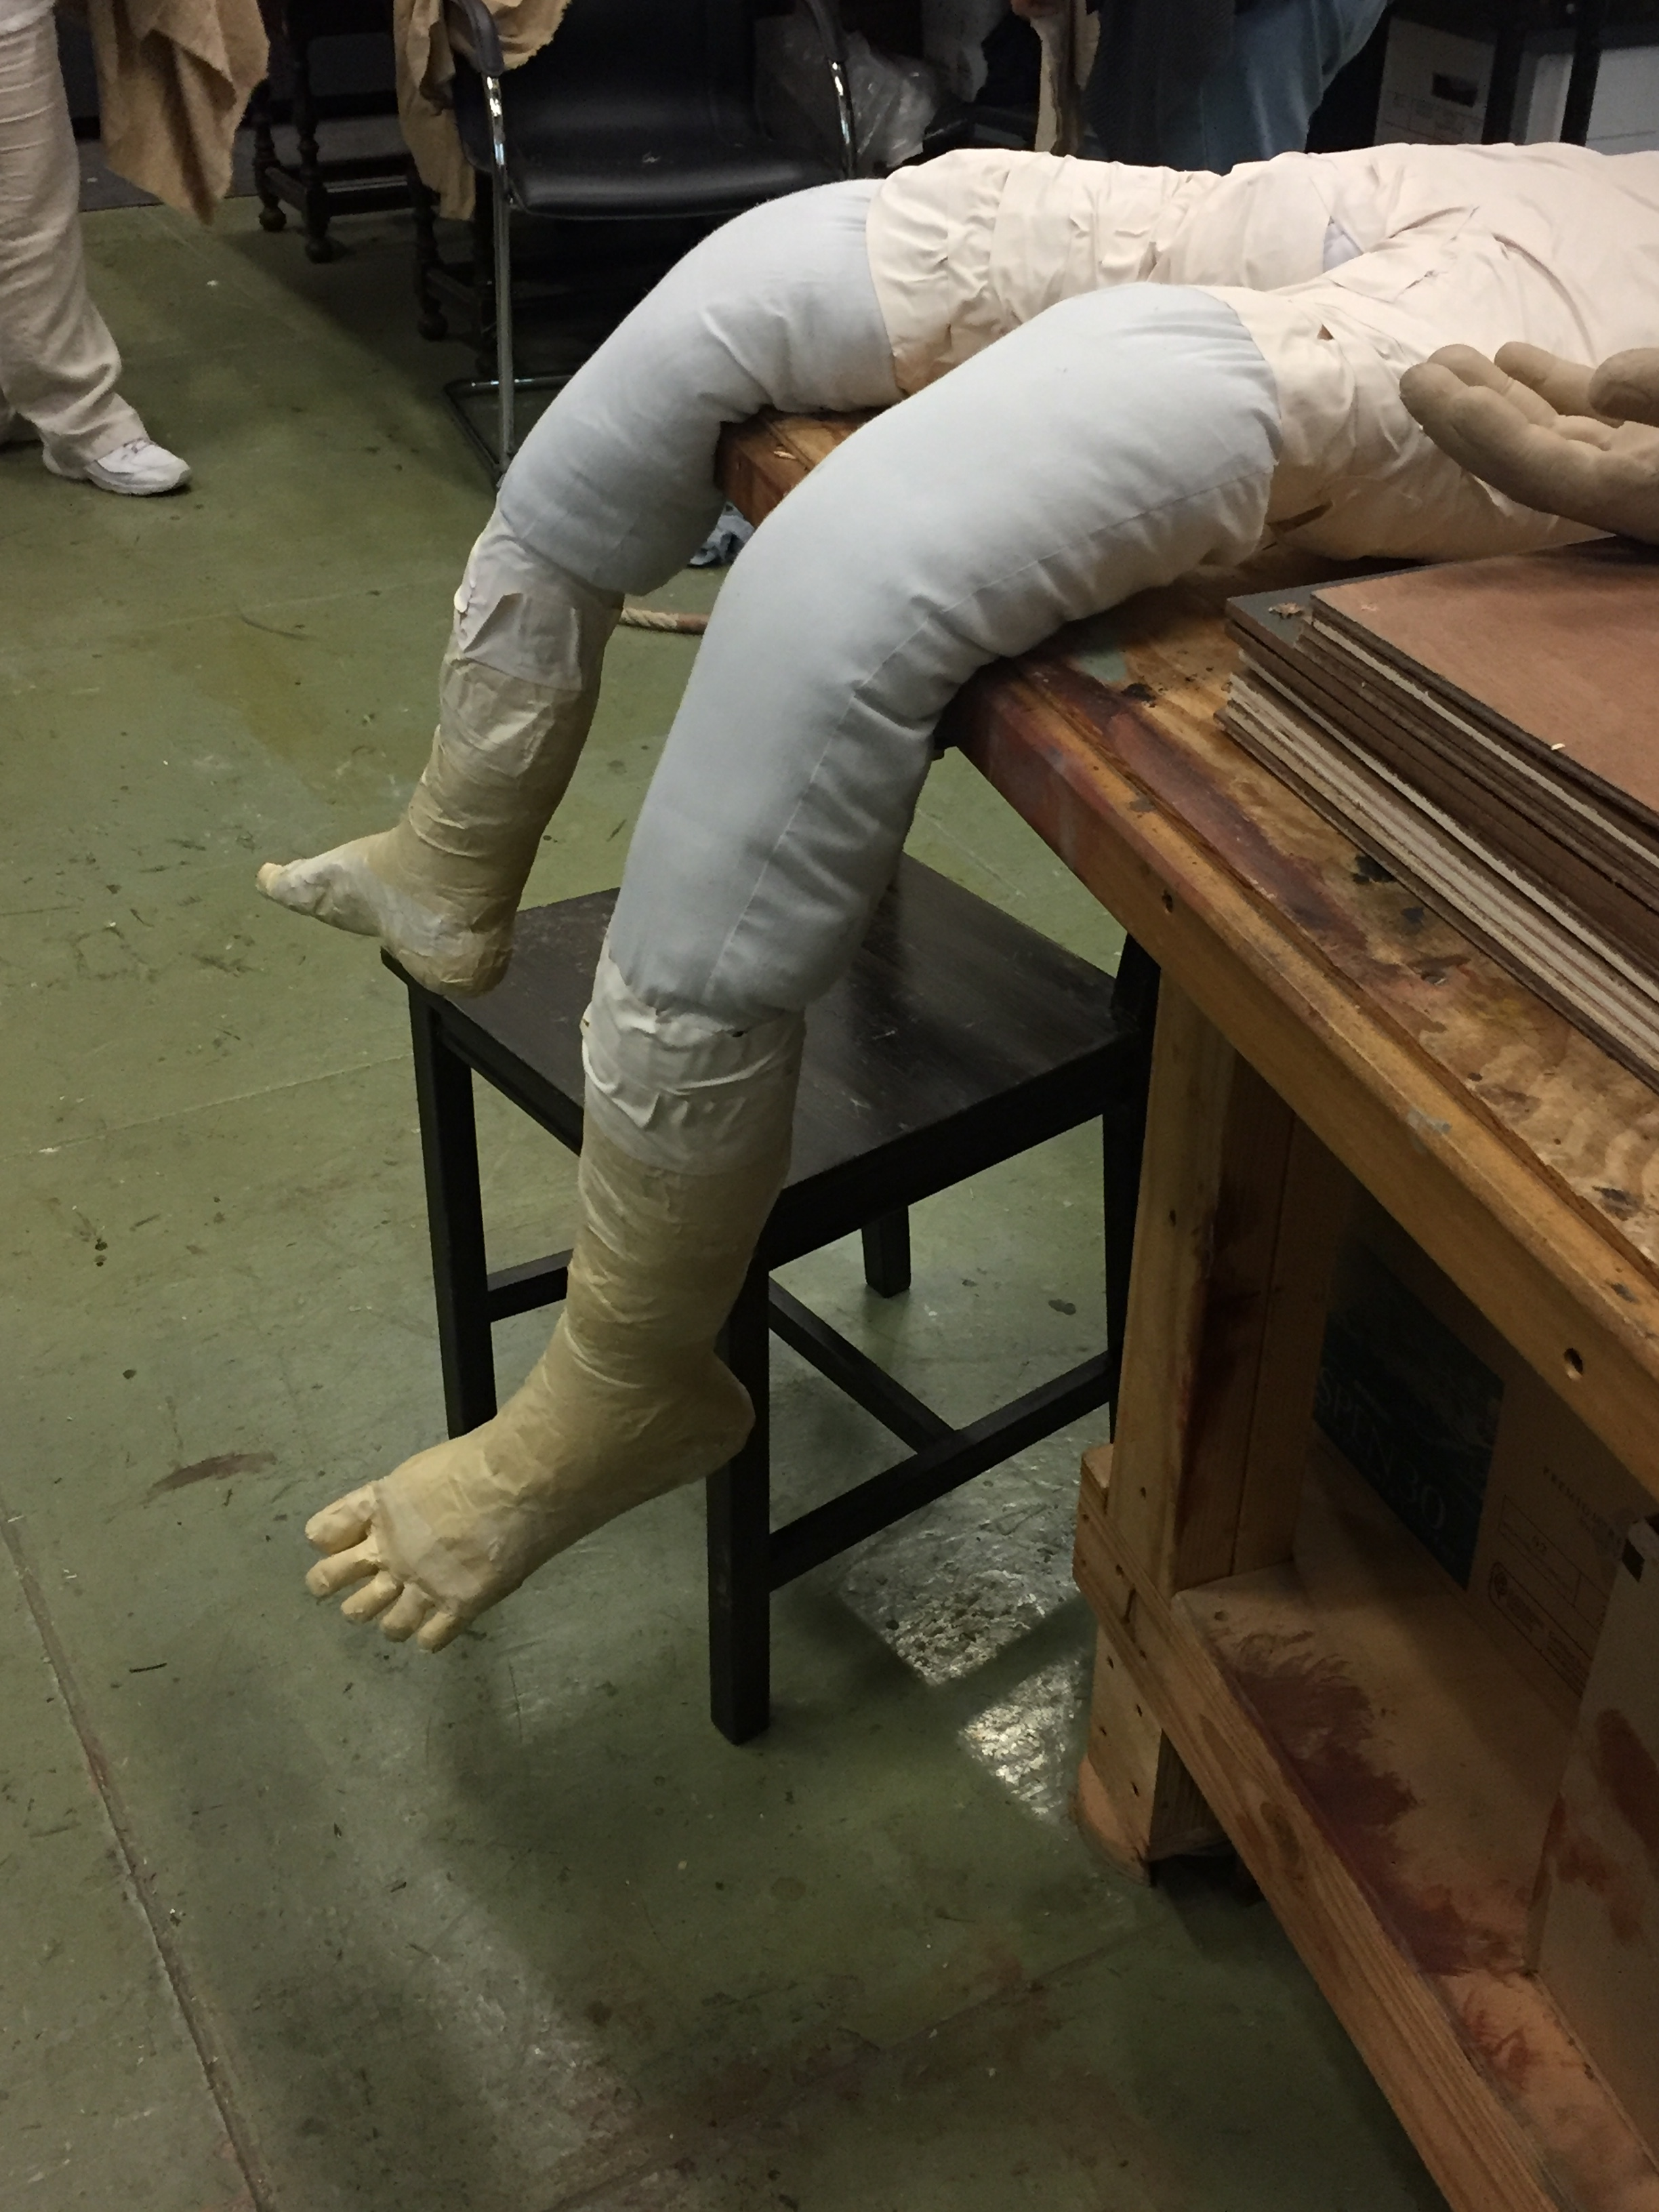 Putting the feet on the fake body